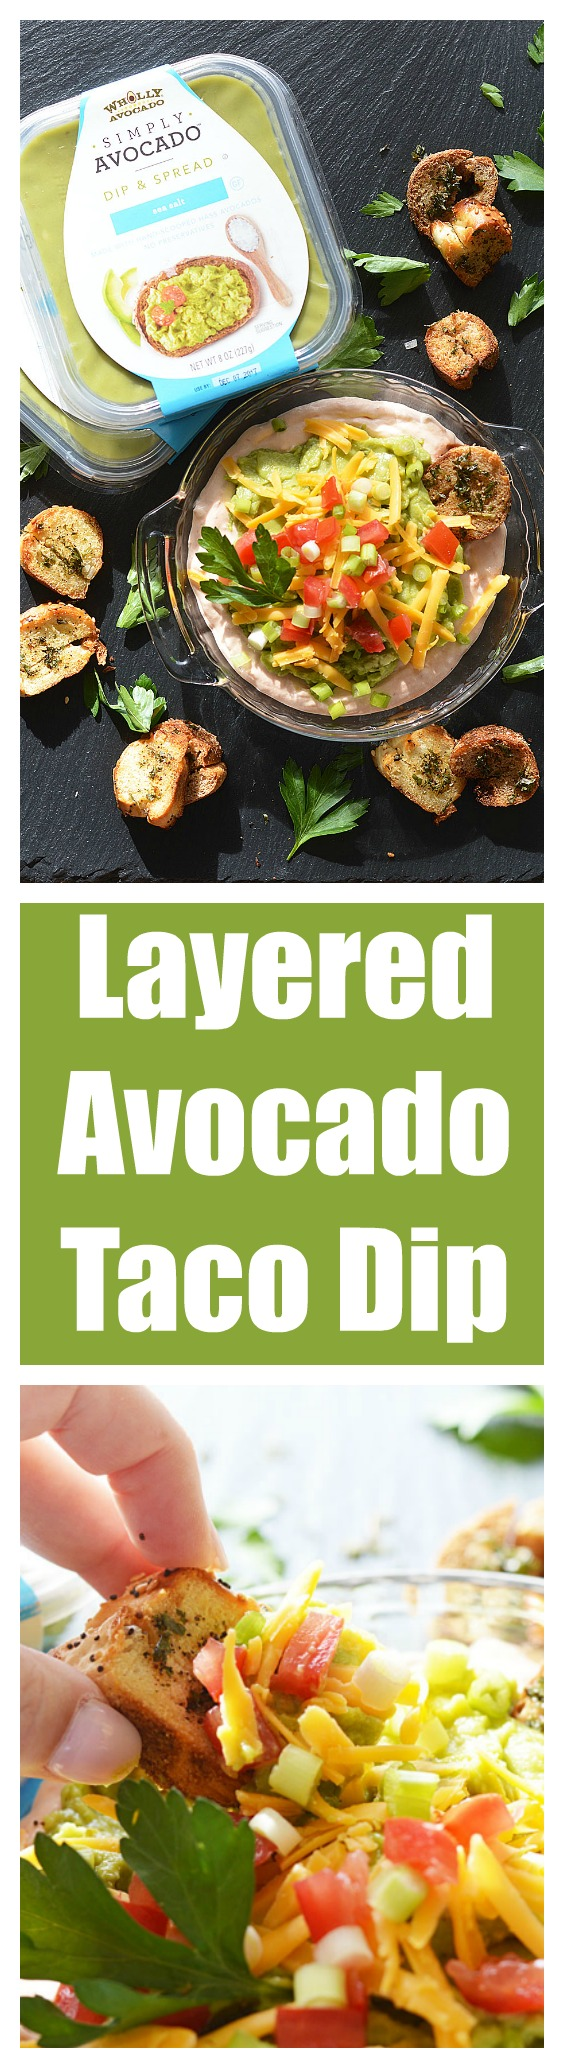 SIMPLY AVOCADO Layered Holiday Taco Dip